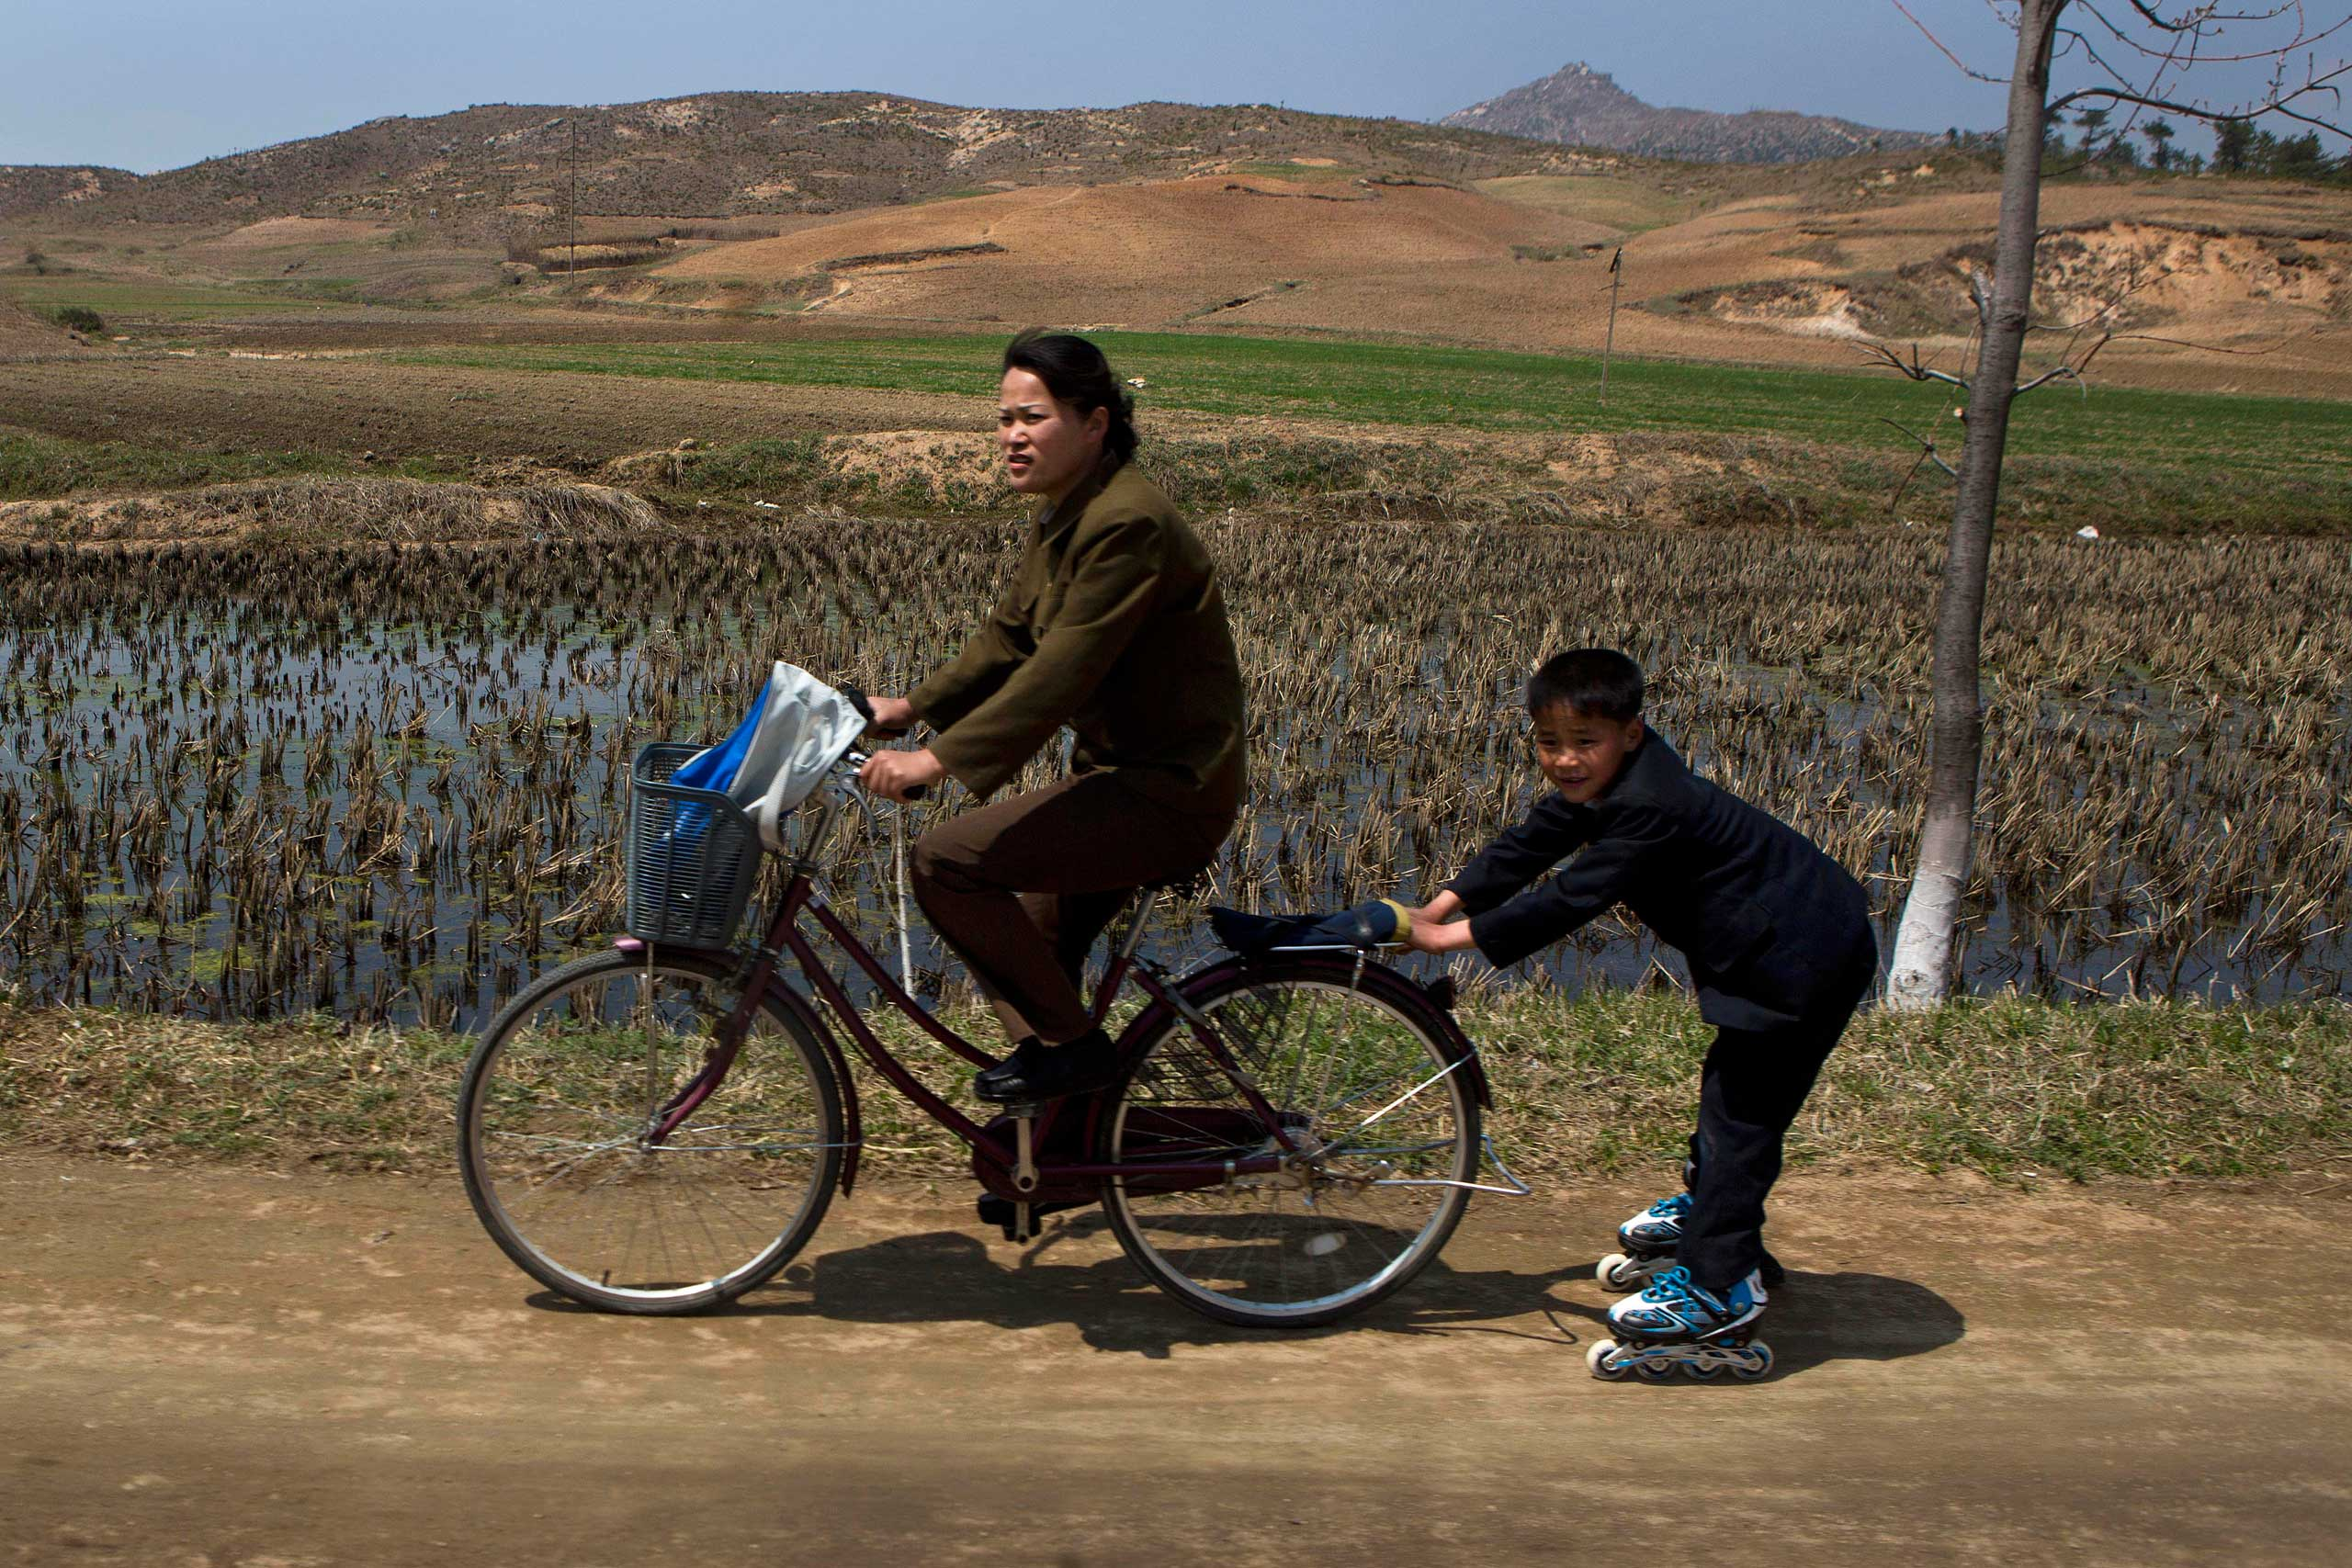 April 24, 2013. A North Korean boy on rollerblades is pulled by a woman on a bicycle on a road south of Kaesong, North Korea and north of the demilitarized zone which separates the two Koreas.